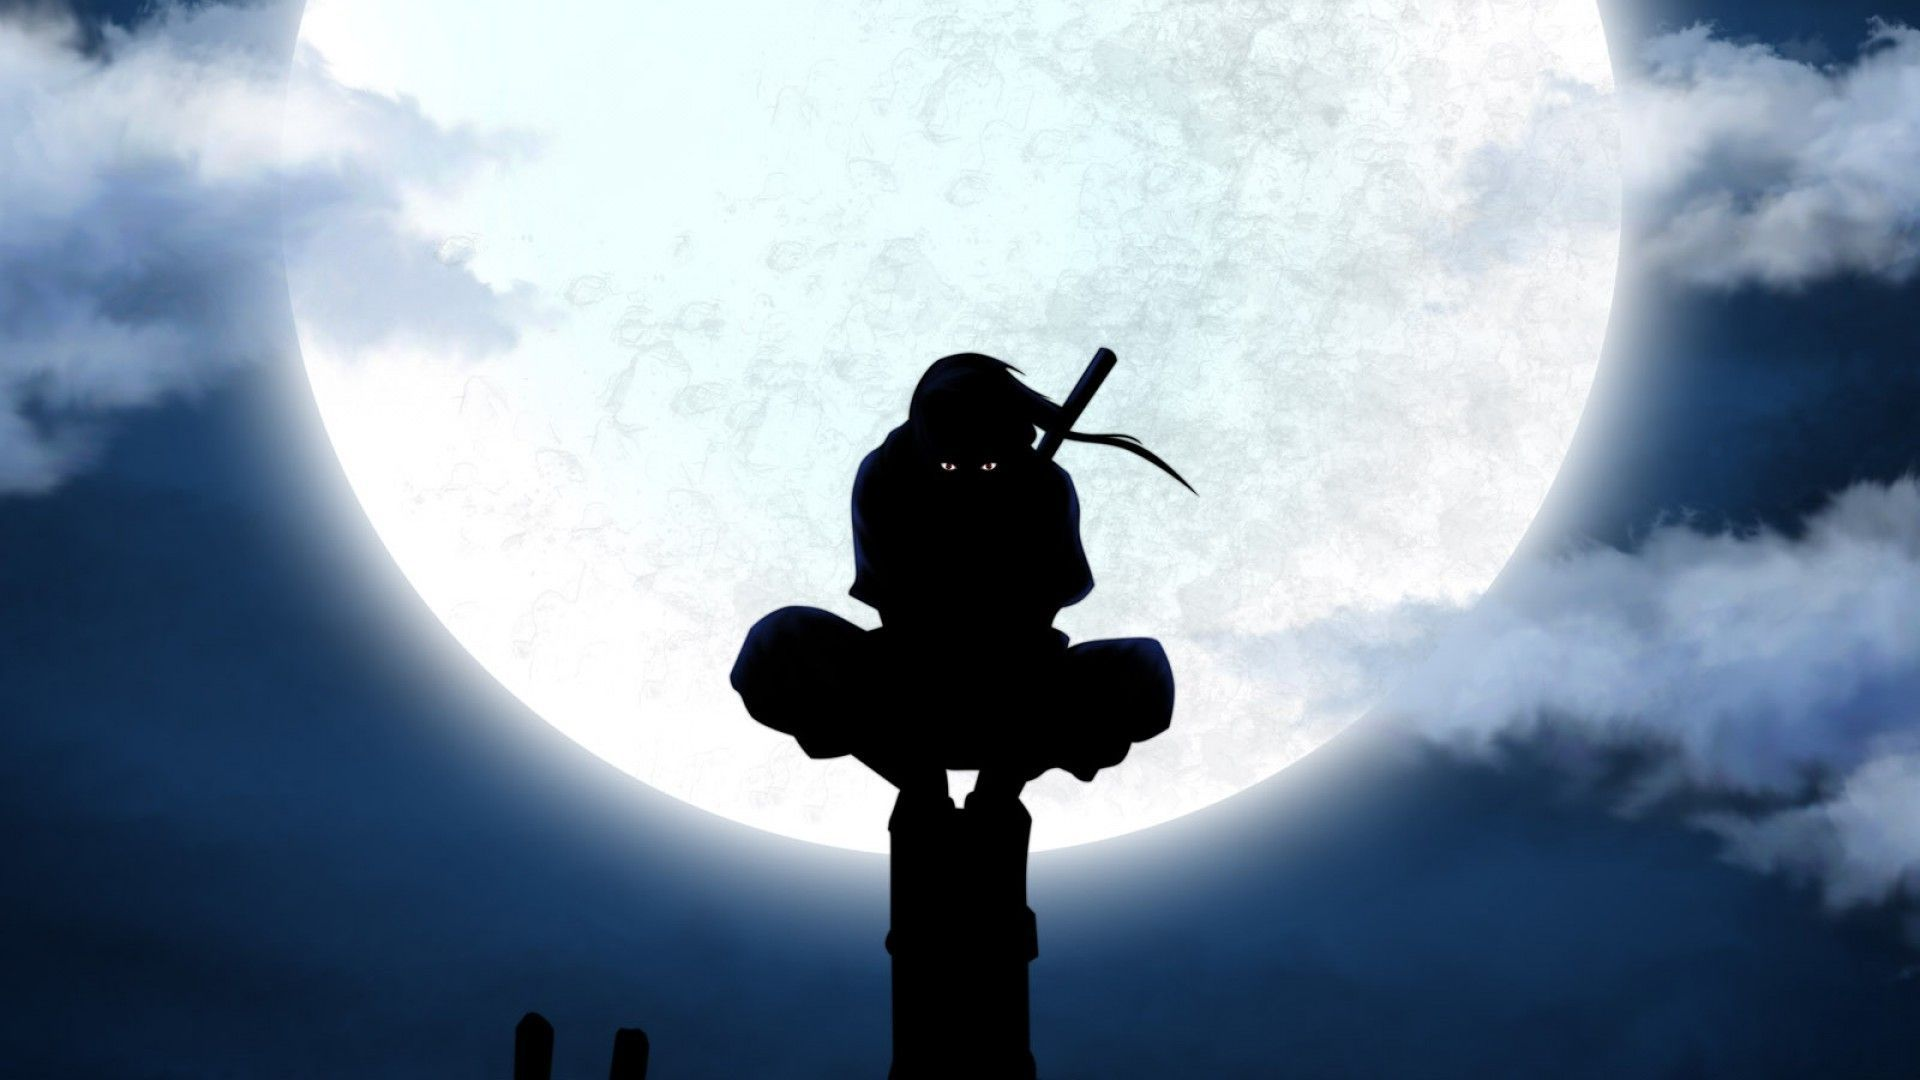 A35 Naruto Itachi Uchiha anime HD Desktop background images pictures wallpapers downloads